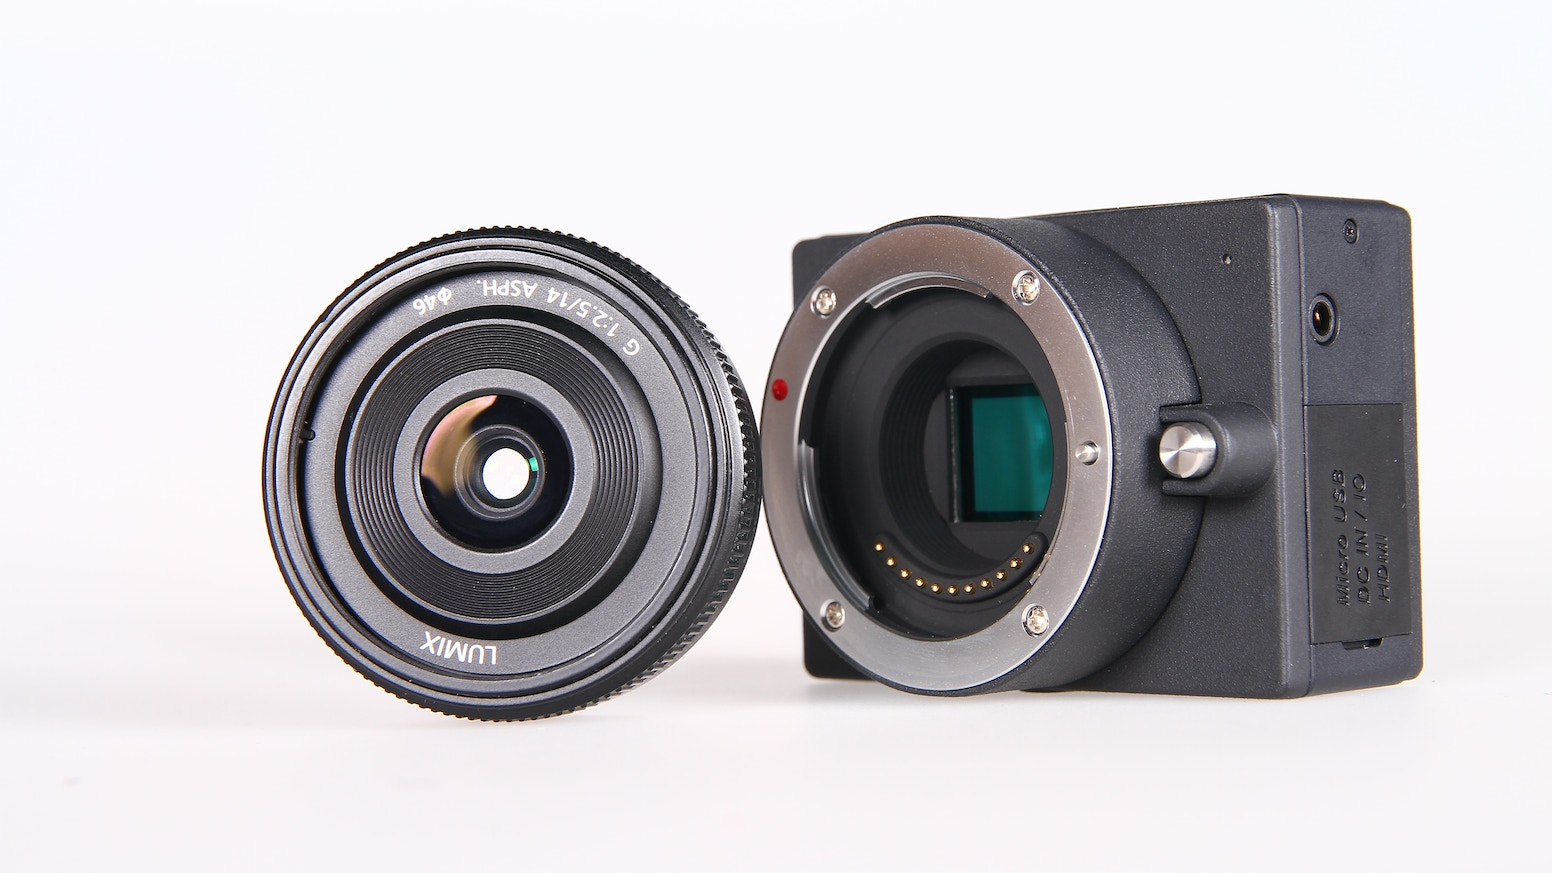 4K UHD. Smallest form factor camera. Supports all Panasonic/Olympus MFT lenses and incredible low light performance. $699.00 MSRP. www.z-cam.com